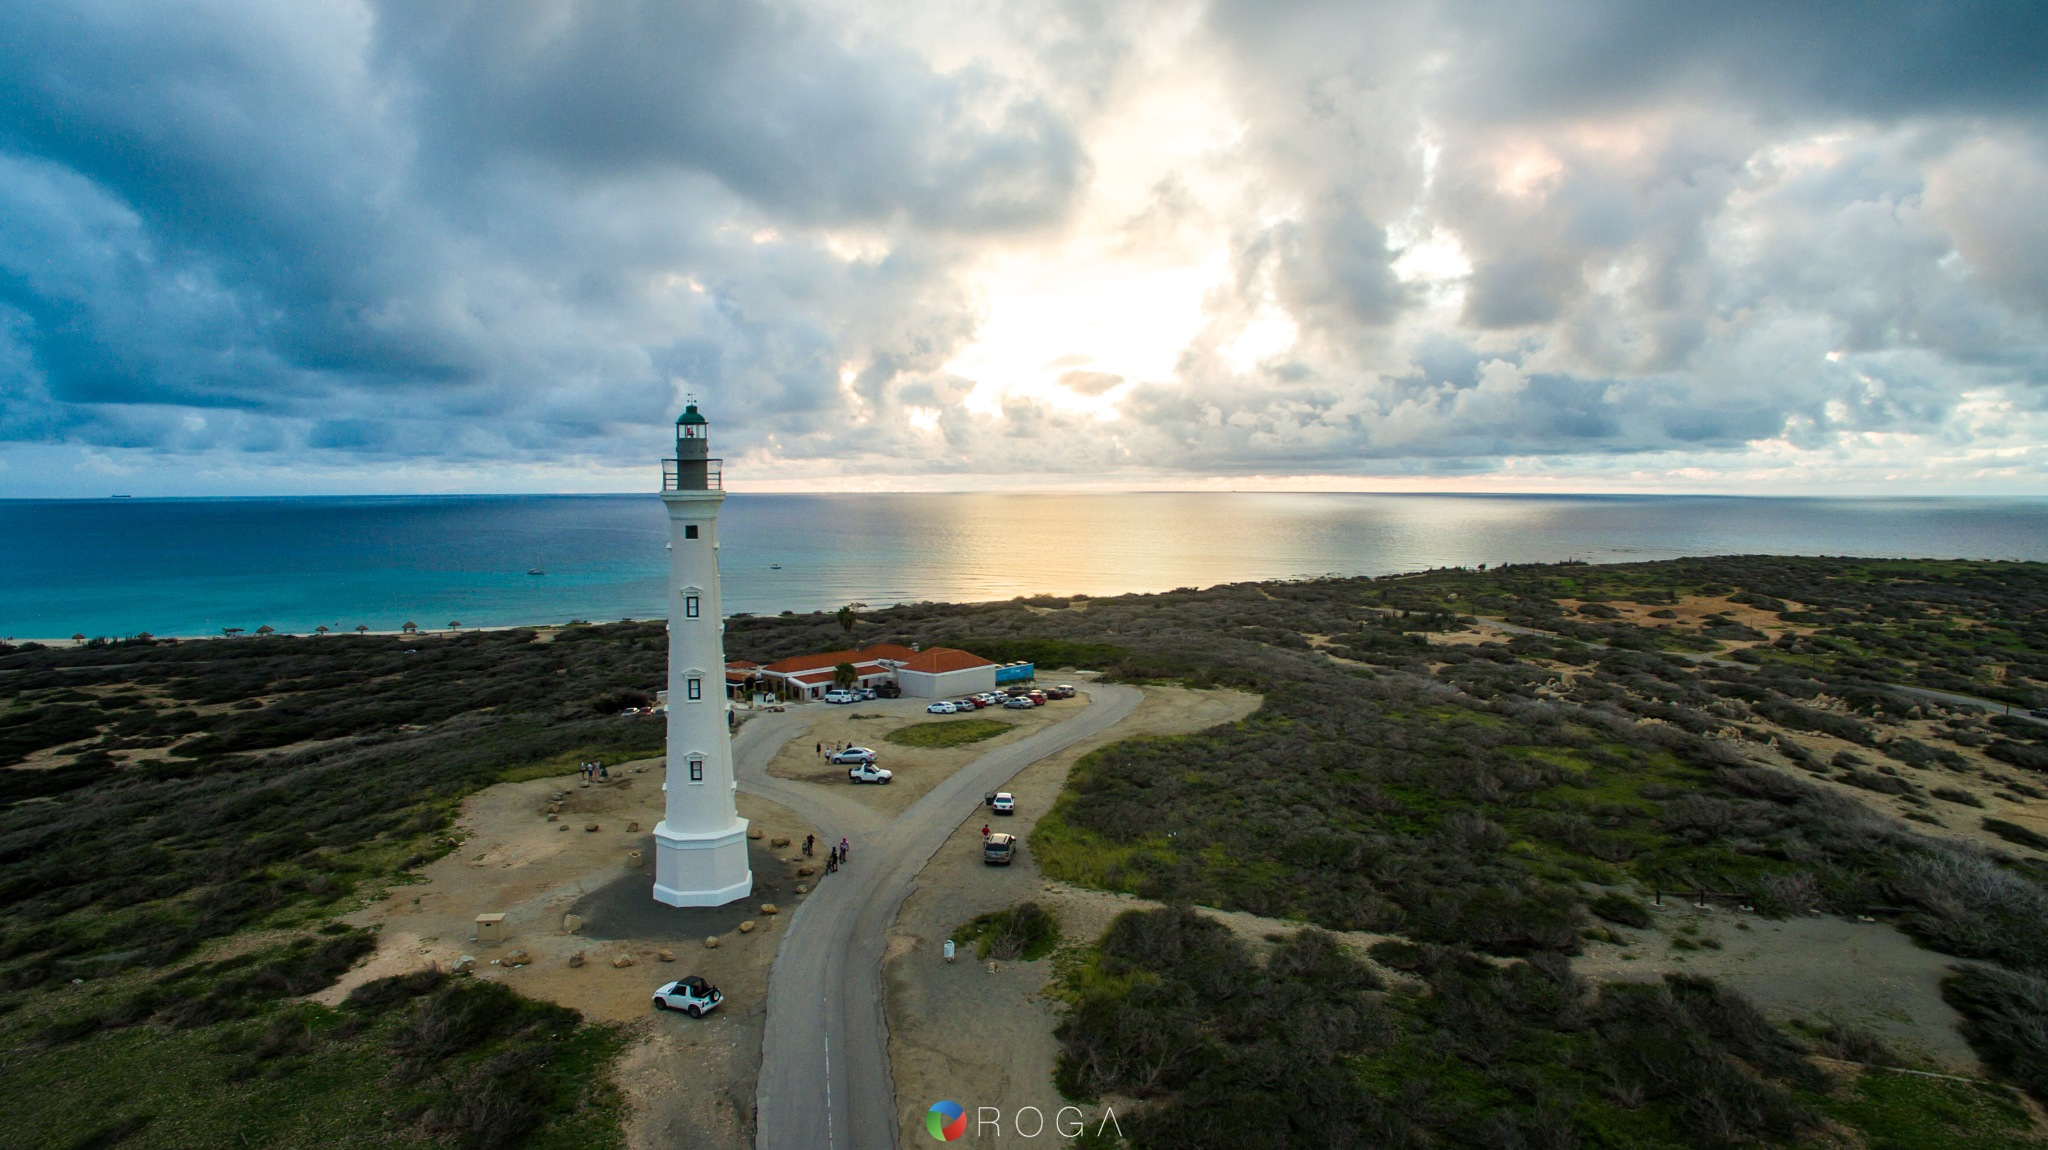 California Lighthouse Aruba by Angelo H.A. Roga